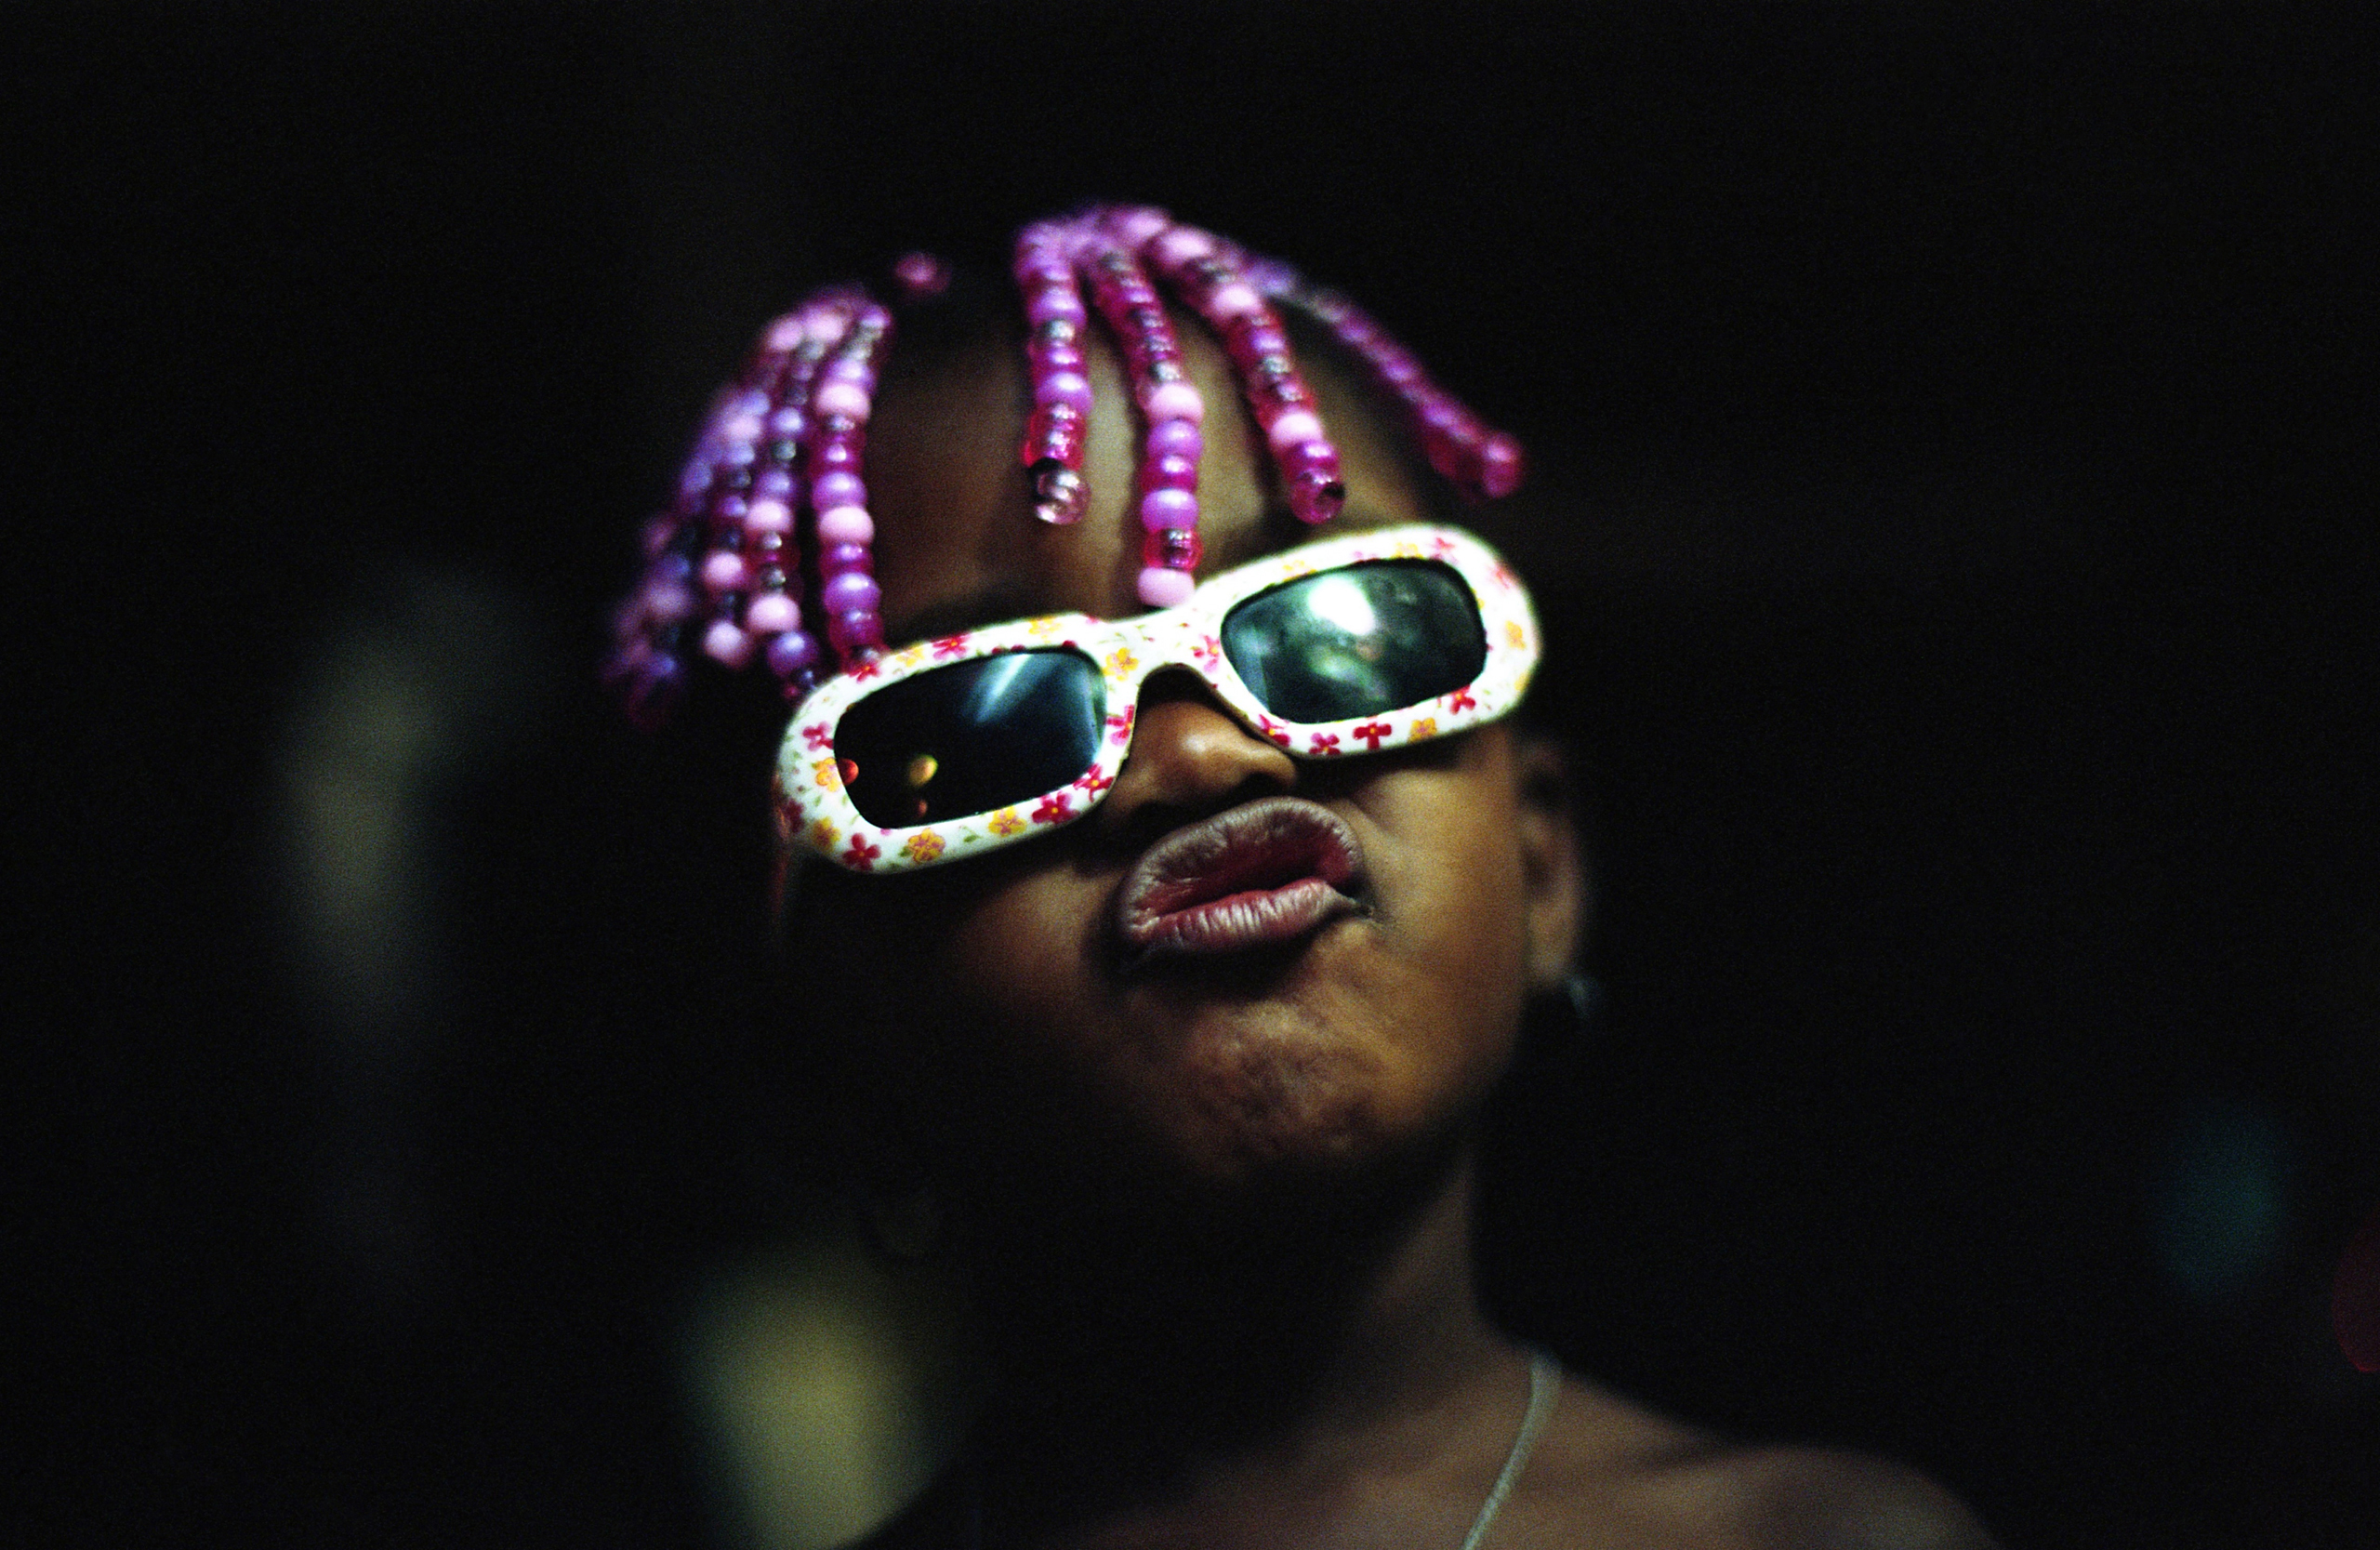 A girl on the street in East Harlem on July 14, 2014.